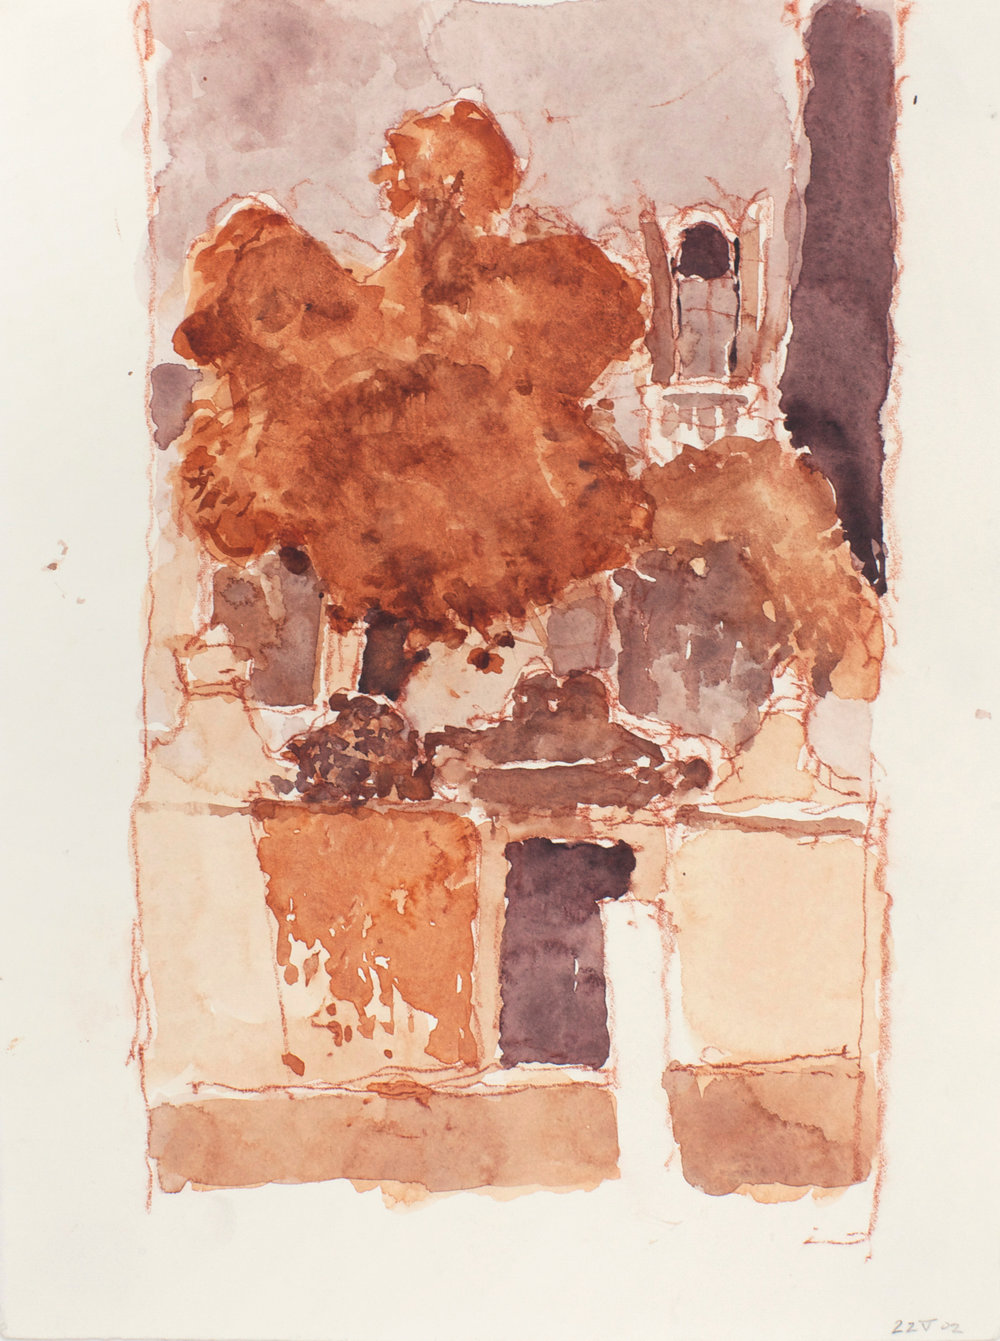 2002_Santa_Ternita_Red_and_Grey_watercolour_and_red_conte_on_paper_15x11in_38x28cm_WPF336.jpg